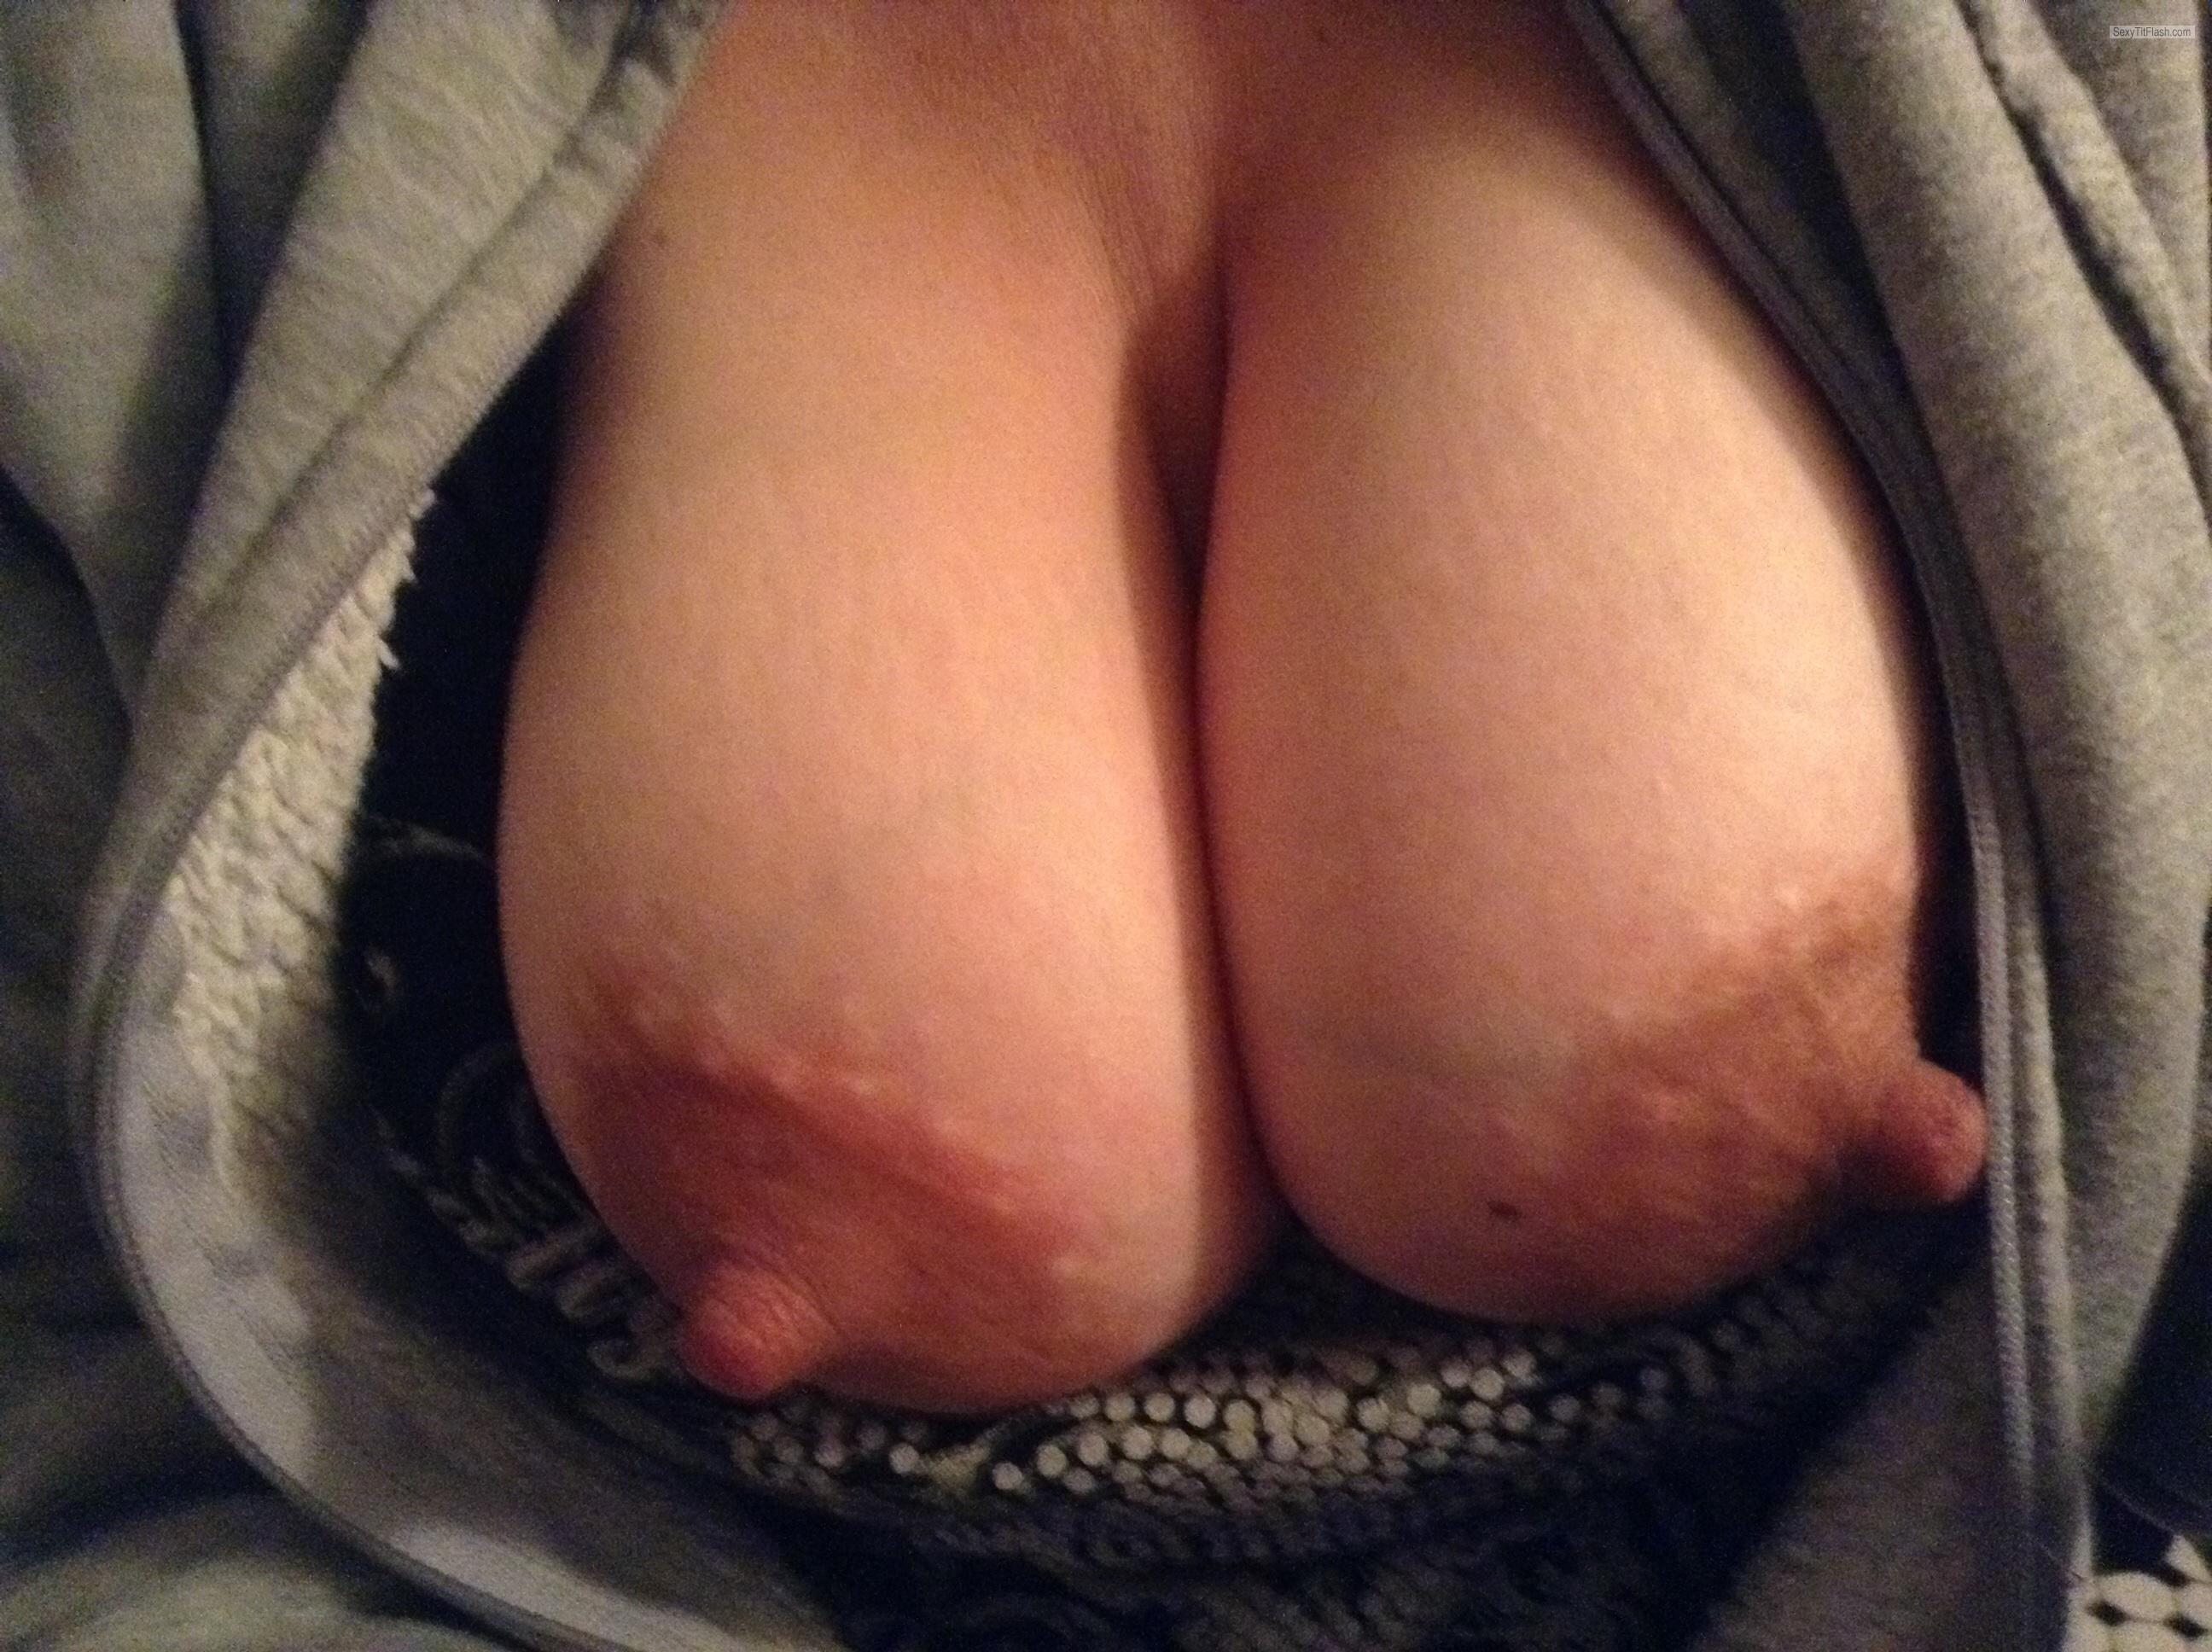 Tit Flash: Wife's Big Tits - Tittymom from United States